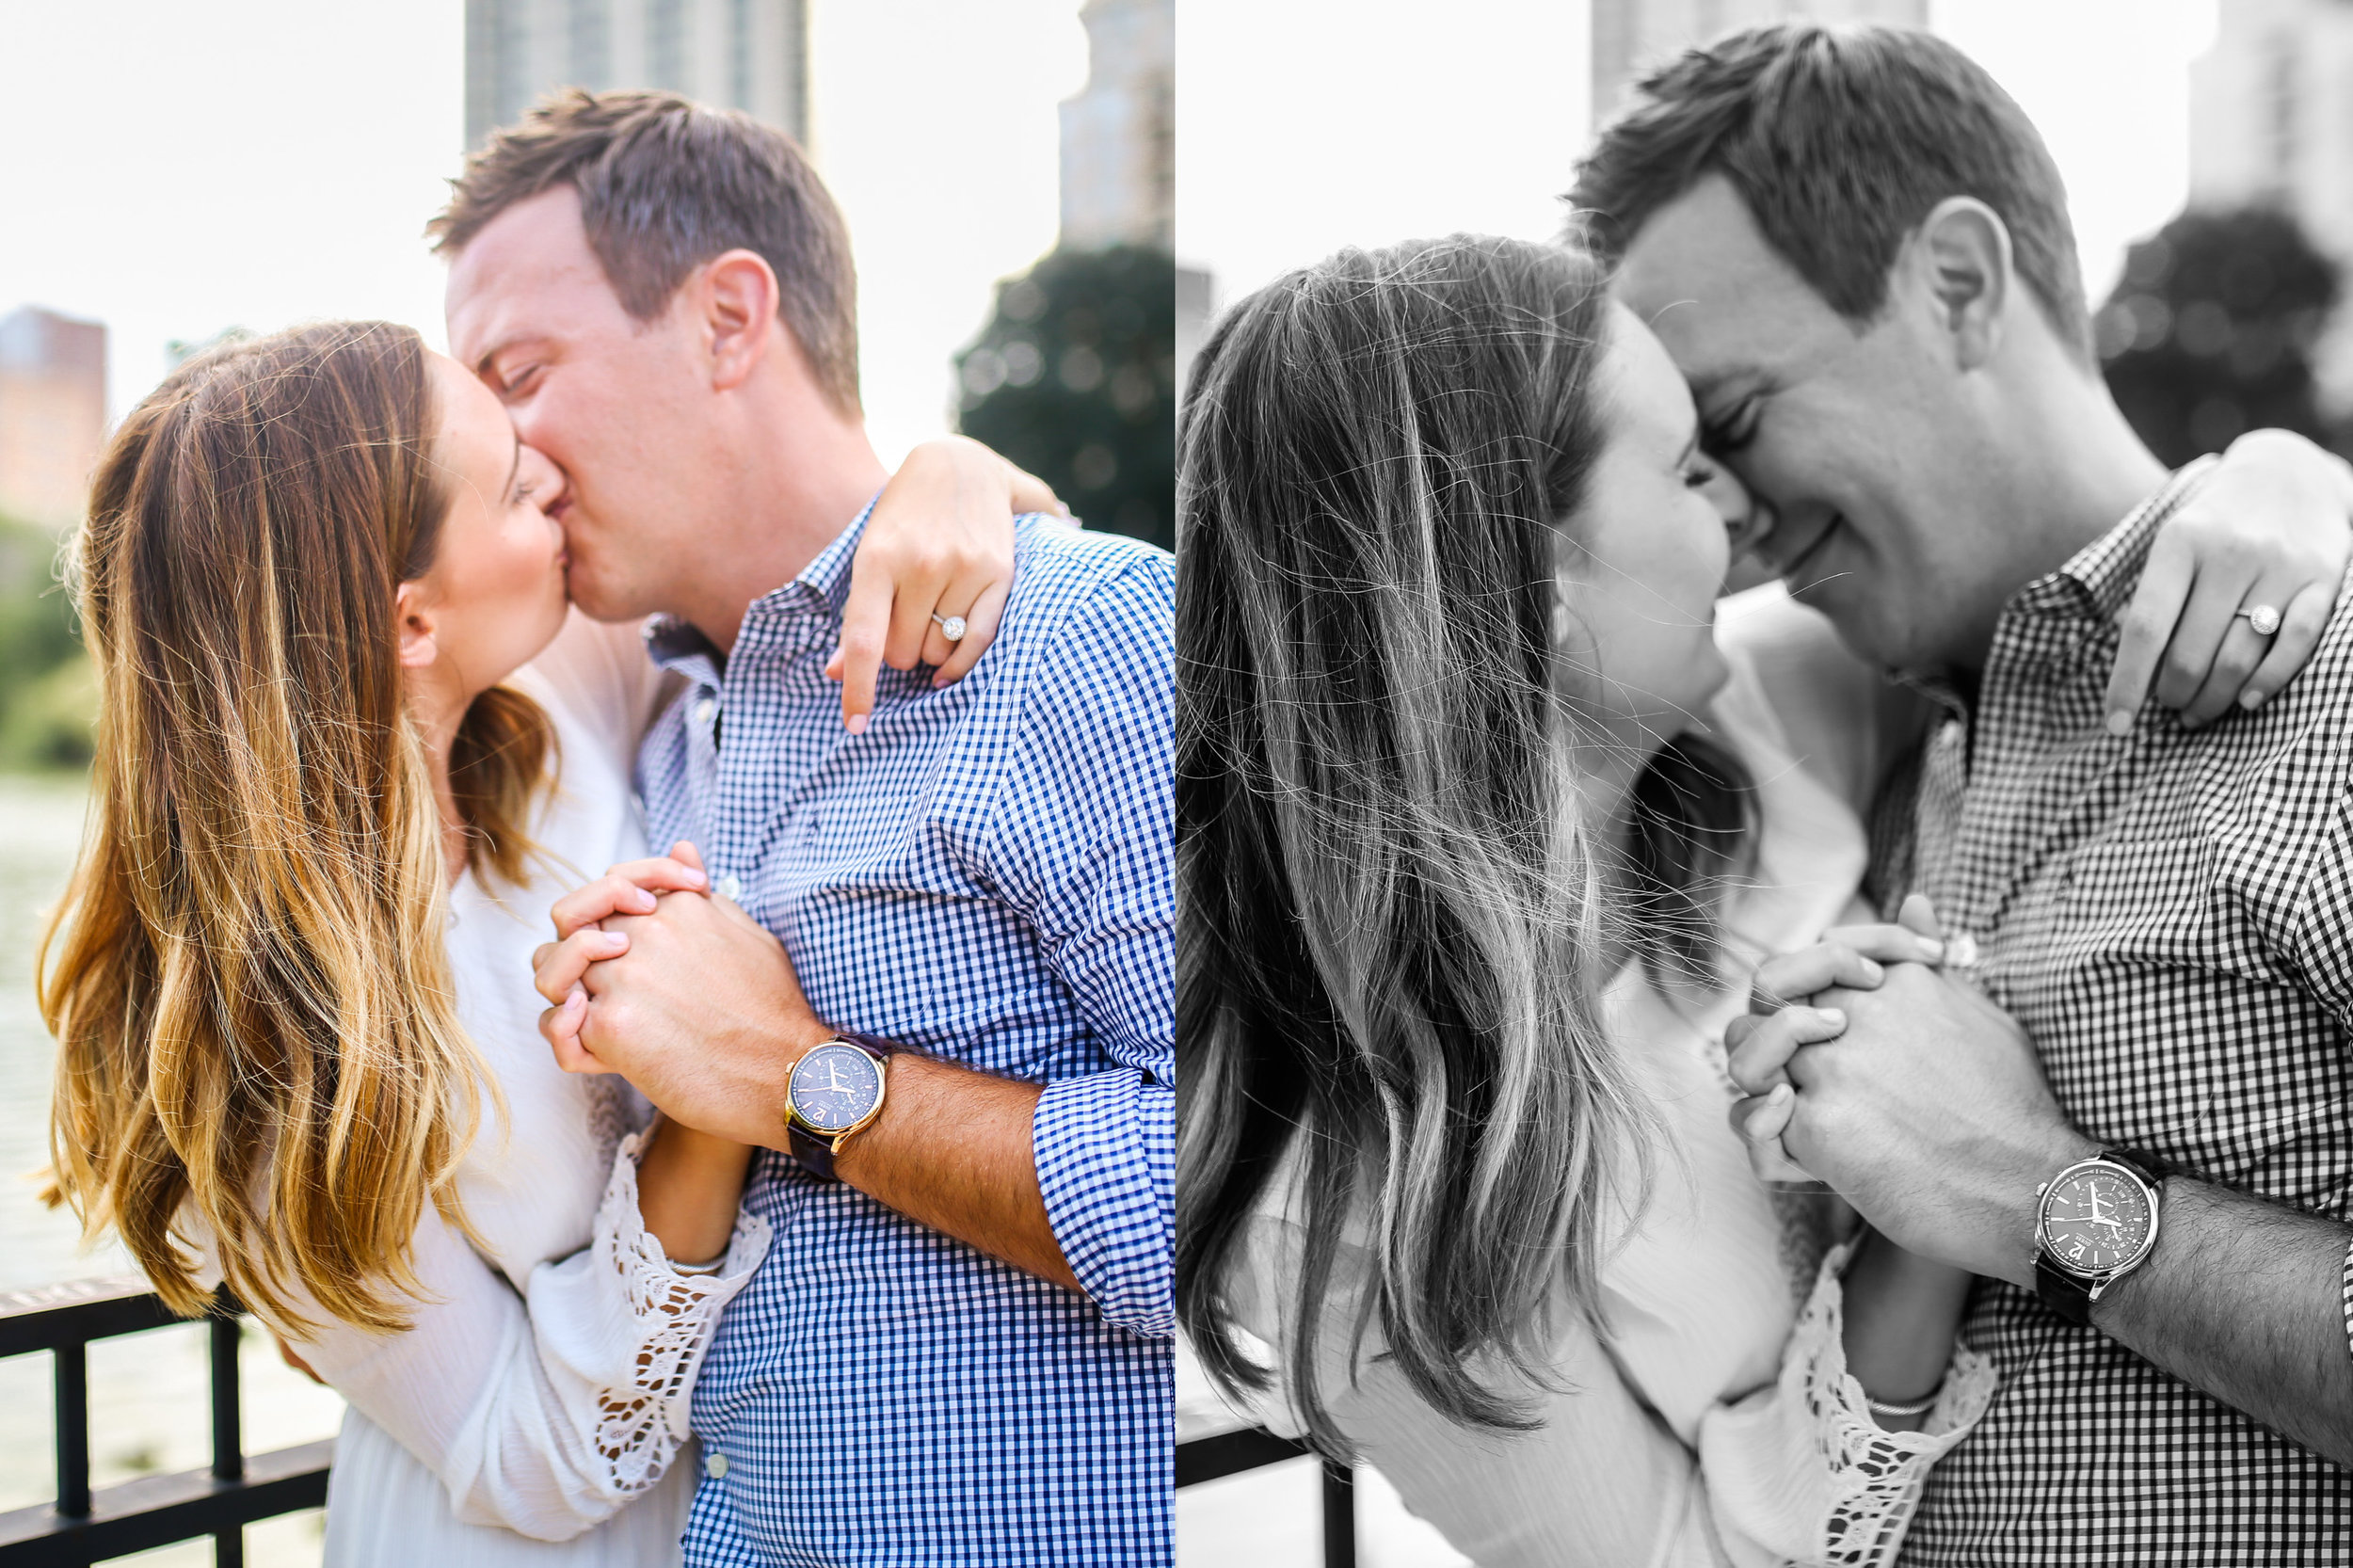 chicago proposal engagement jenny grimm photography